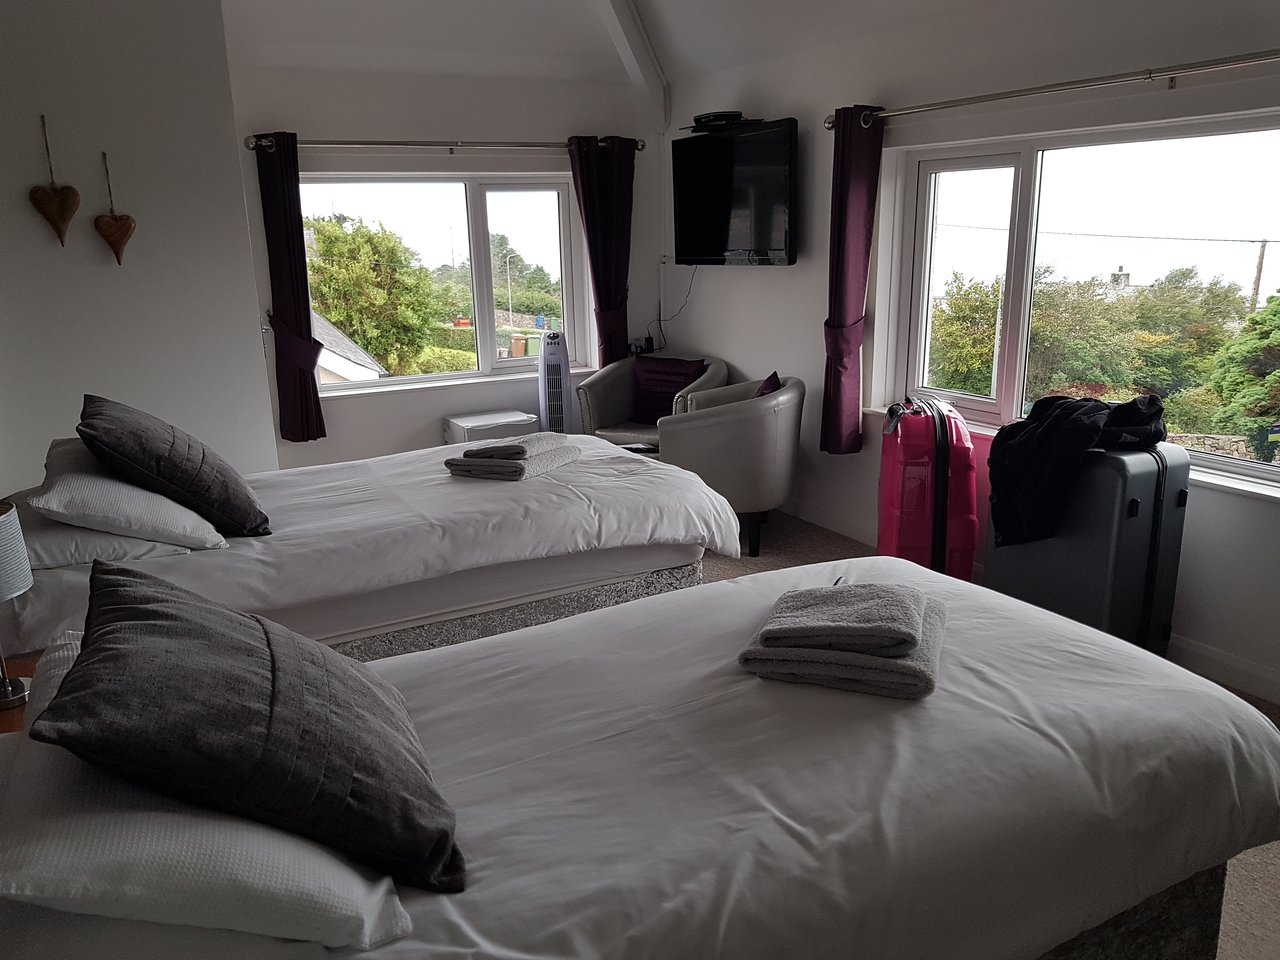 Bed And Breakfast Romford Dol Aur Bed And Breakfast Updated 2019 Prices B B Reviews